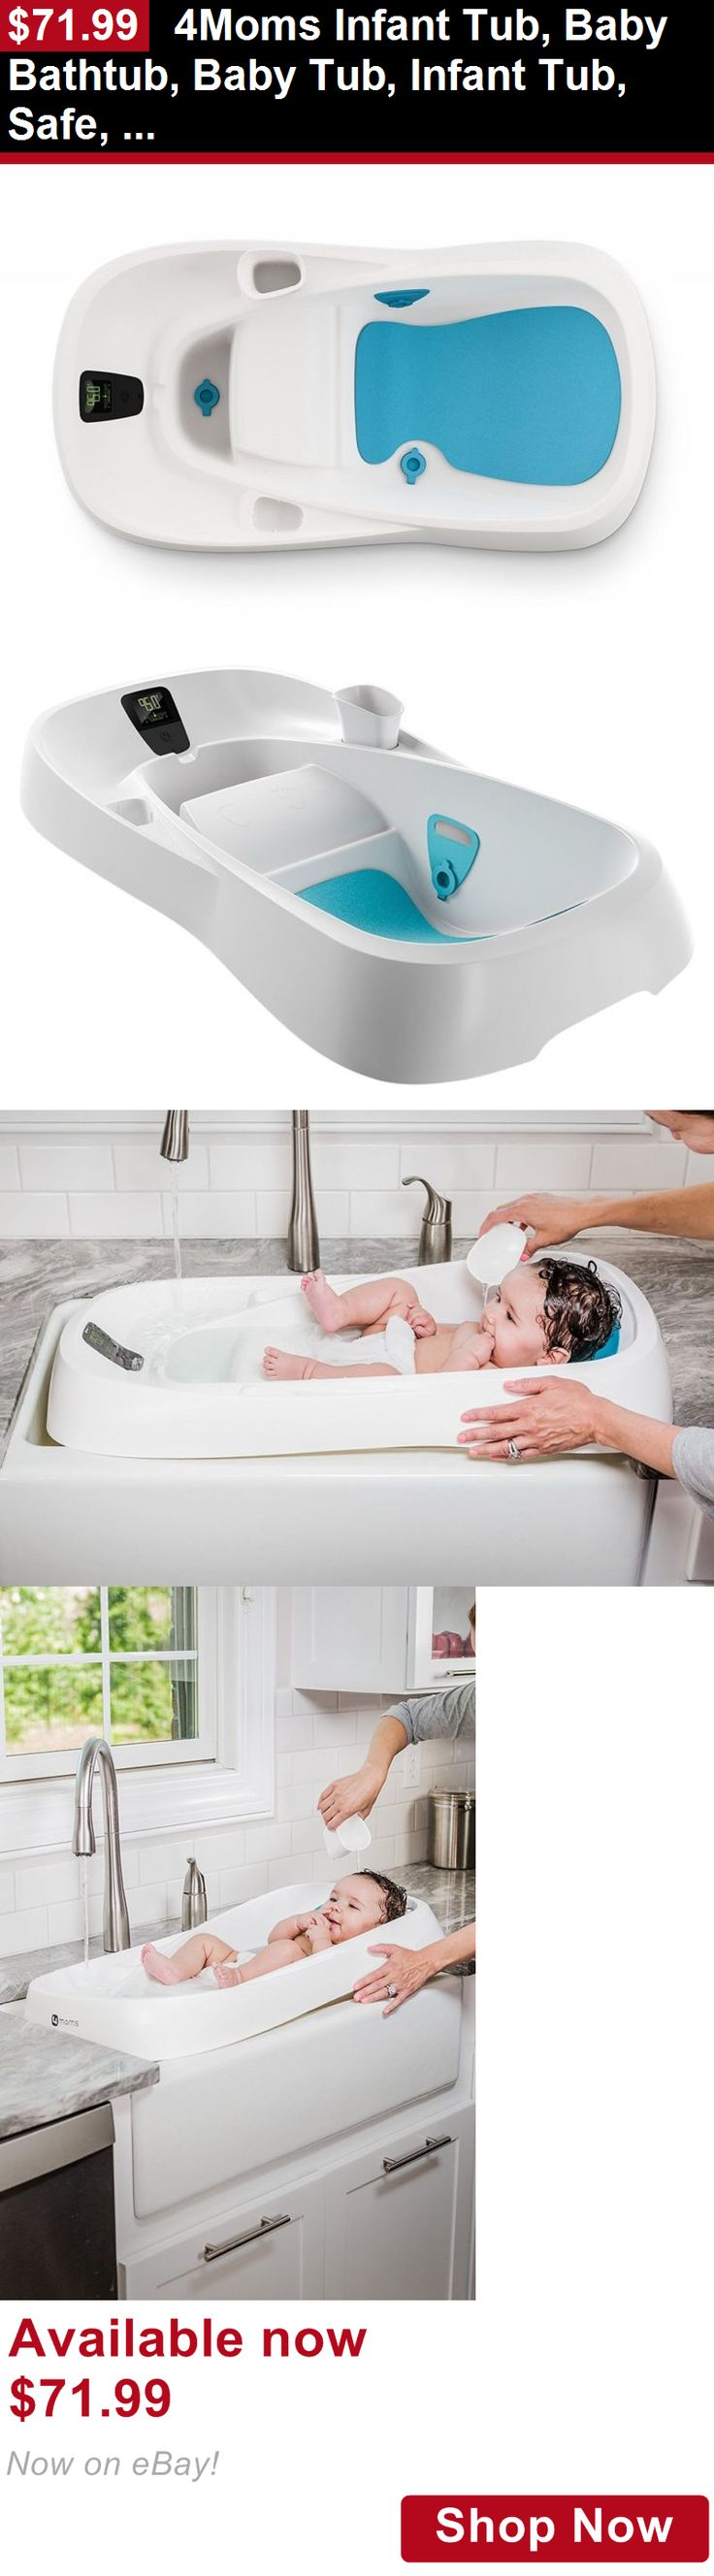 1000 ideas about baby bath tubs on pinterest baby tub baby and baby bath. Black Bedroom Furniture Sets. Home Design Ideas